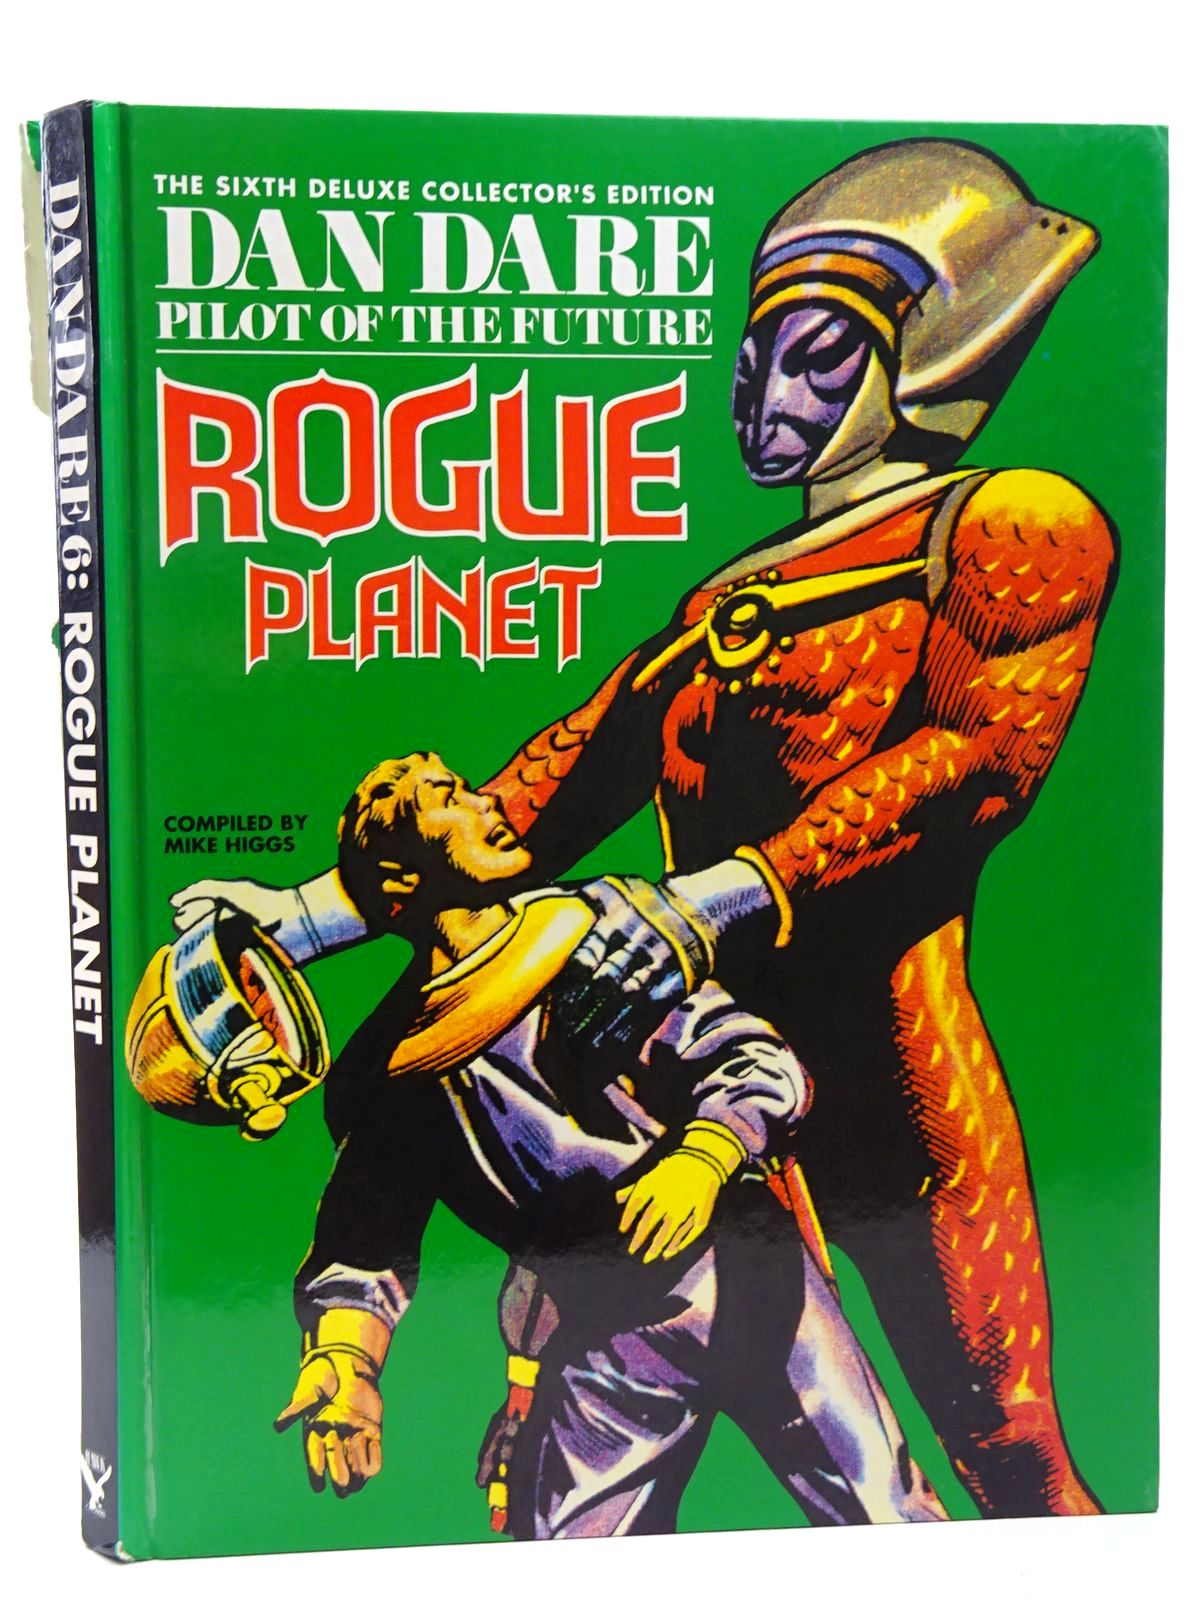 Photo of THE SIXTH DELUXE COLLECTOR'S EDITION OF DAN DARE PILOT OF THE FUTURE ROGUE PLANET written by Higgs, Mike published by Hawk Books (STOCK CODE: 2124555)  for sale by Stella & Rose's Books